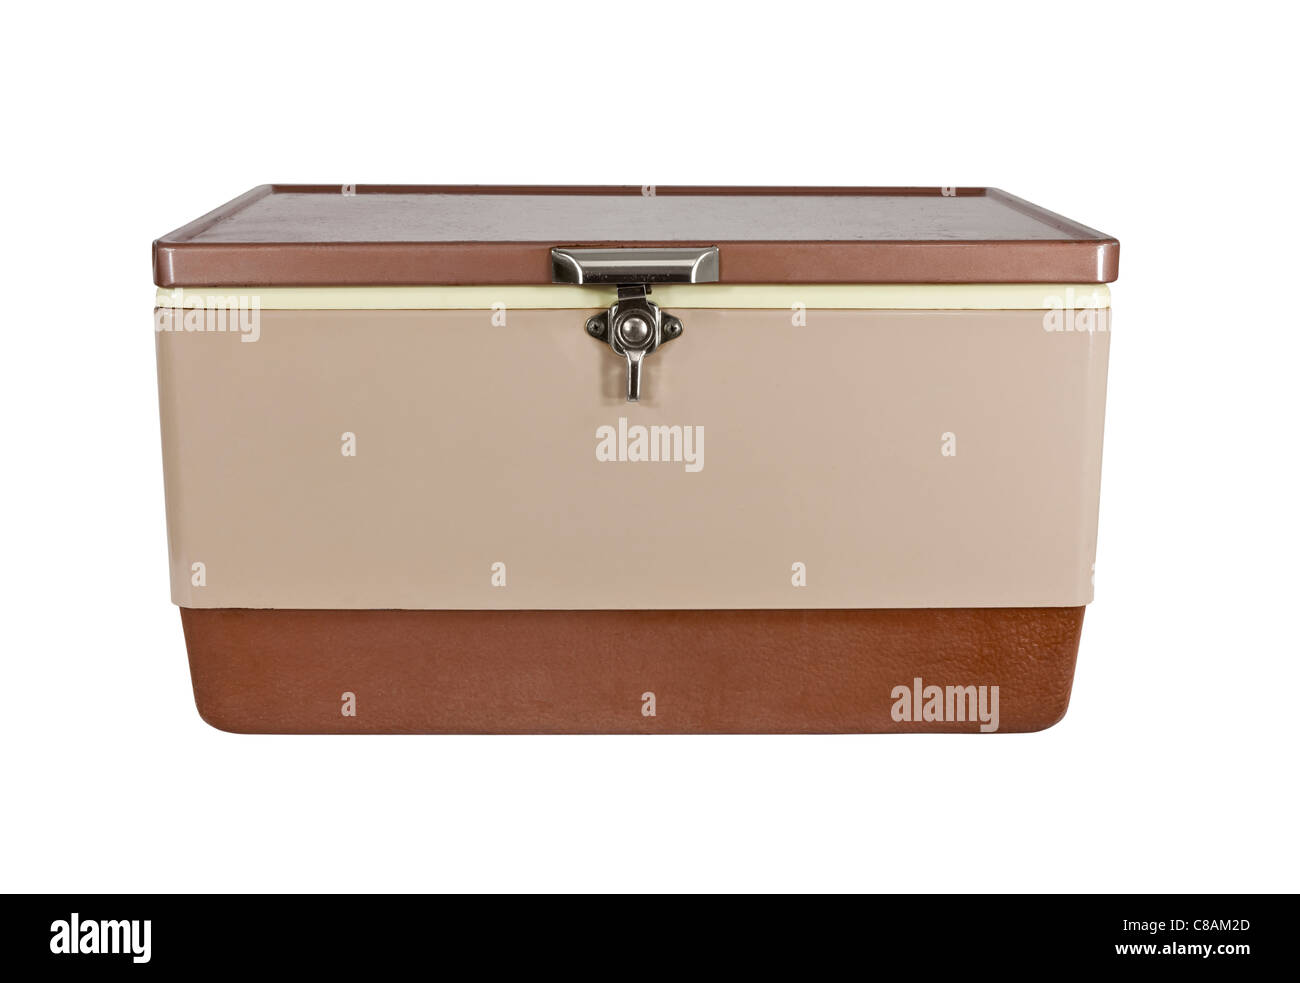 Retro ice chest cooler from the early 1970's. - Stock Image